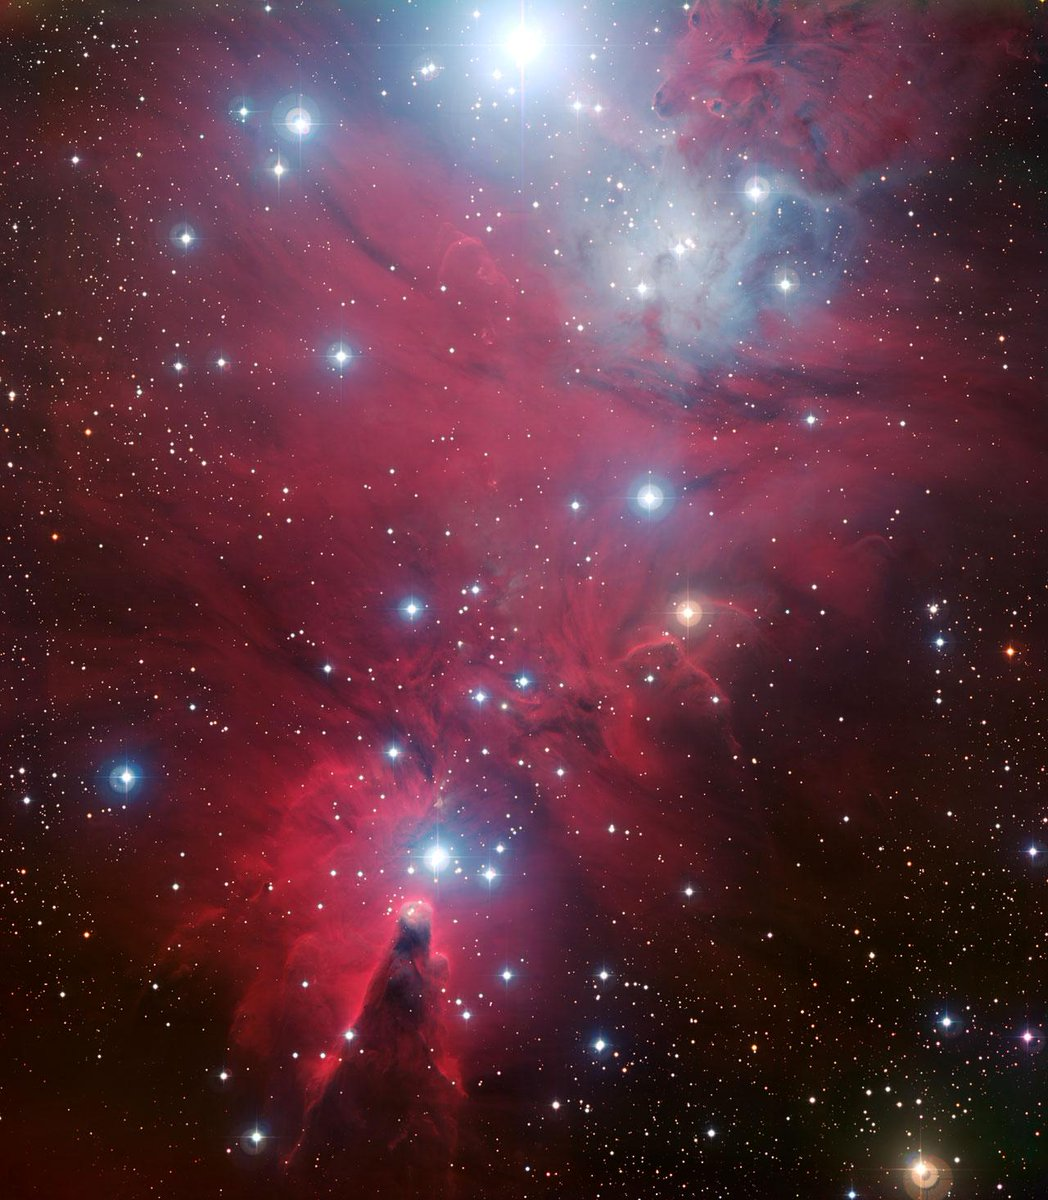 Interesting research suggests that DNA & RNA may have originally formed in space: http://t.co/urUiQplYsz http://t.co/5CalqYlSBv